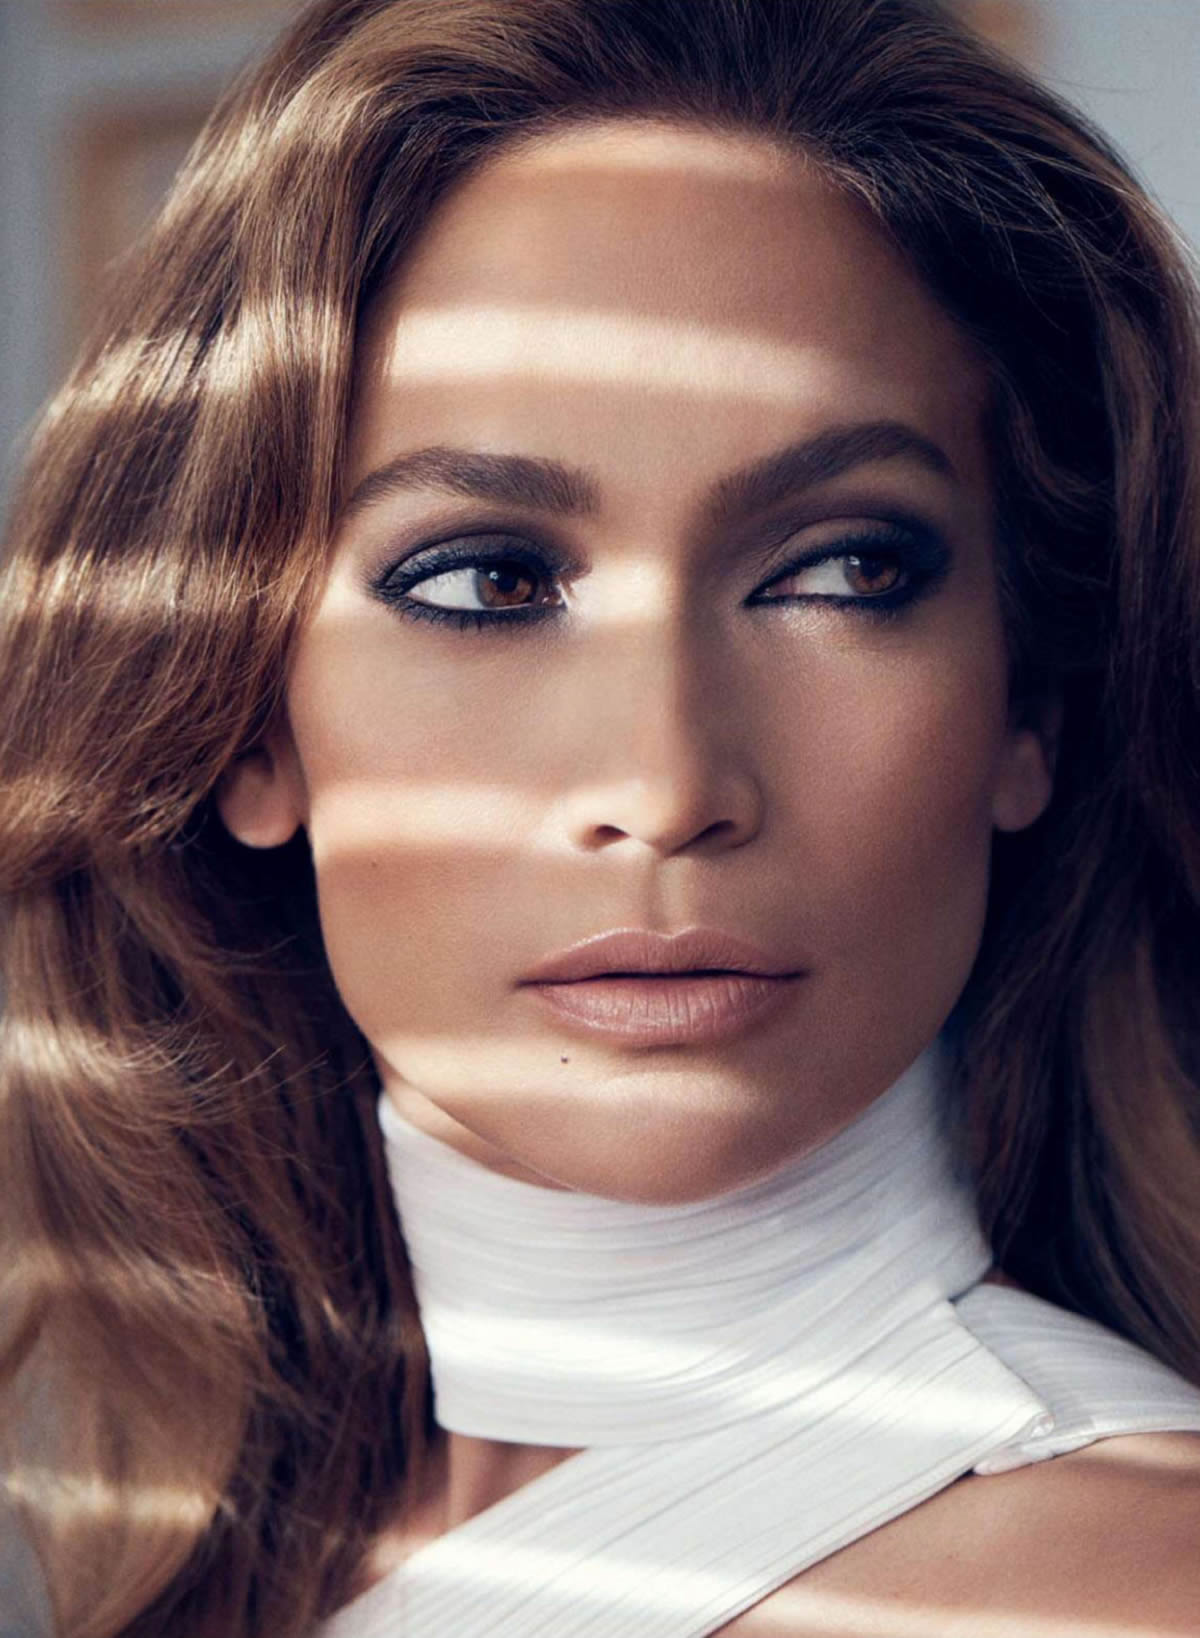 Jennifer Lopez - First Latin-American actress to earn over $1 million for a film